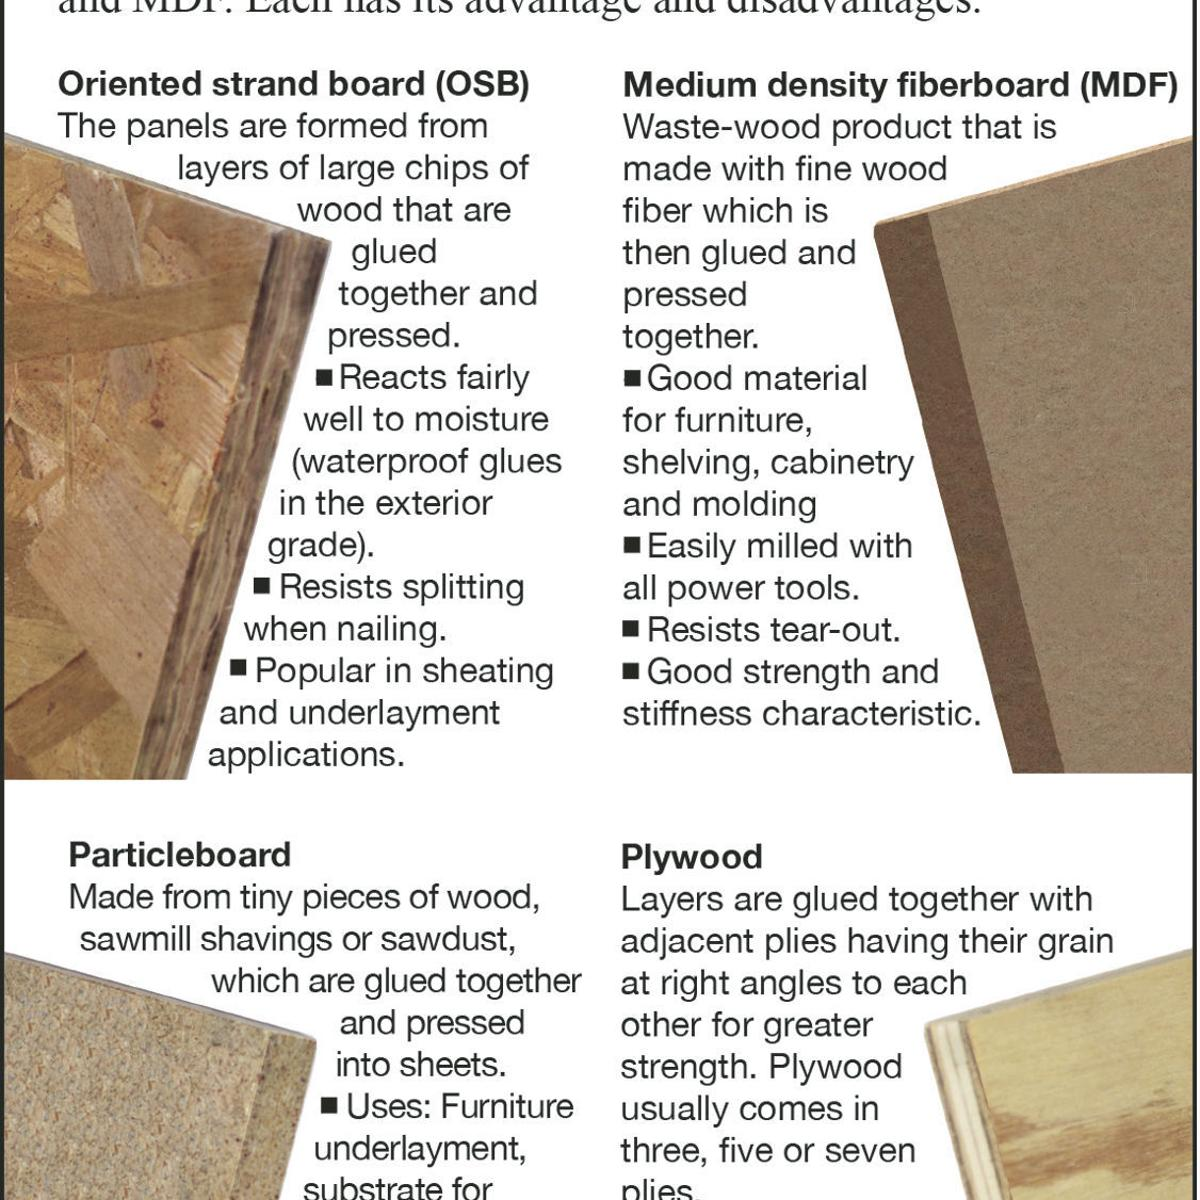 Which to use: Fiberboard, particleboard or oriented strand